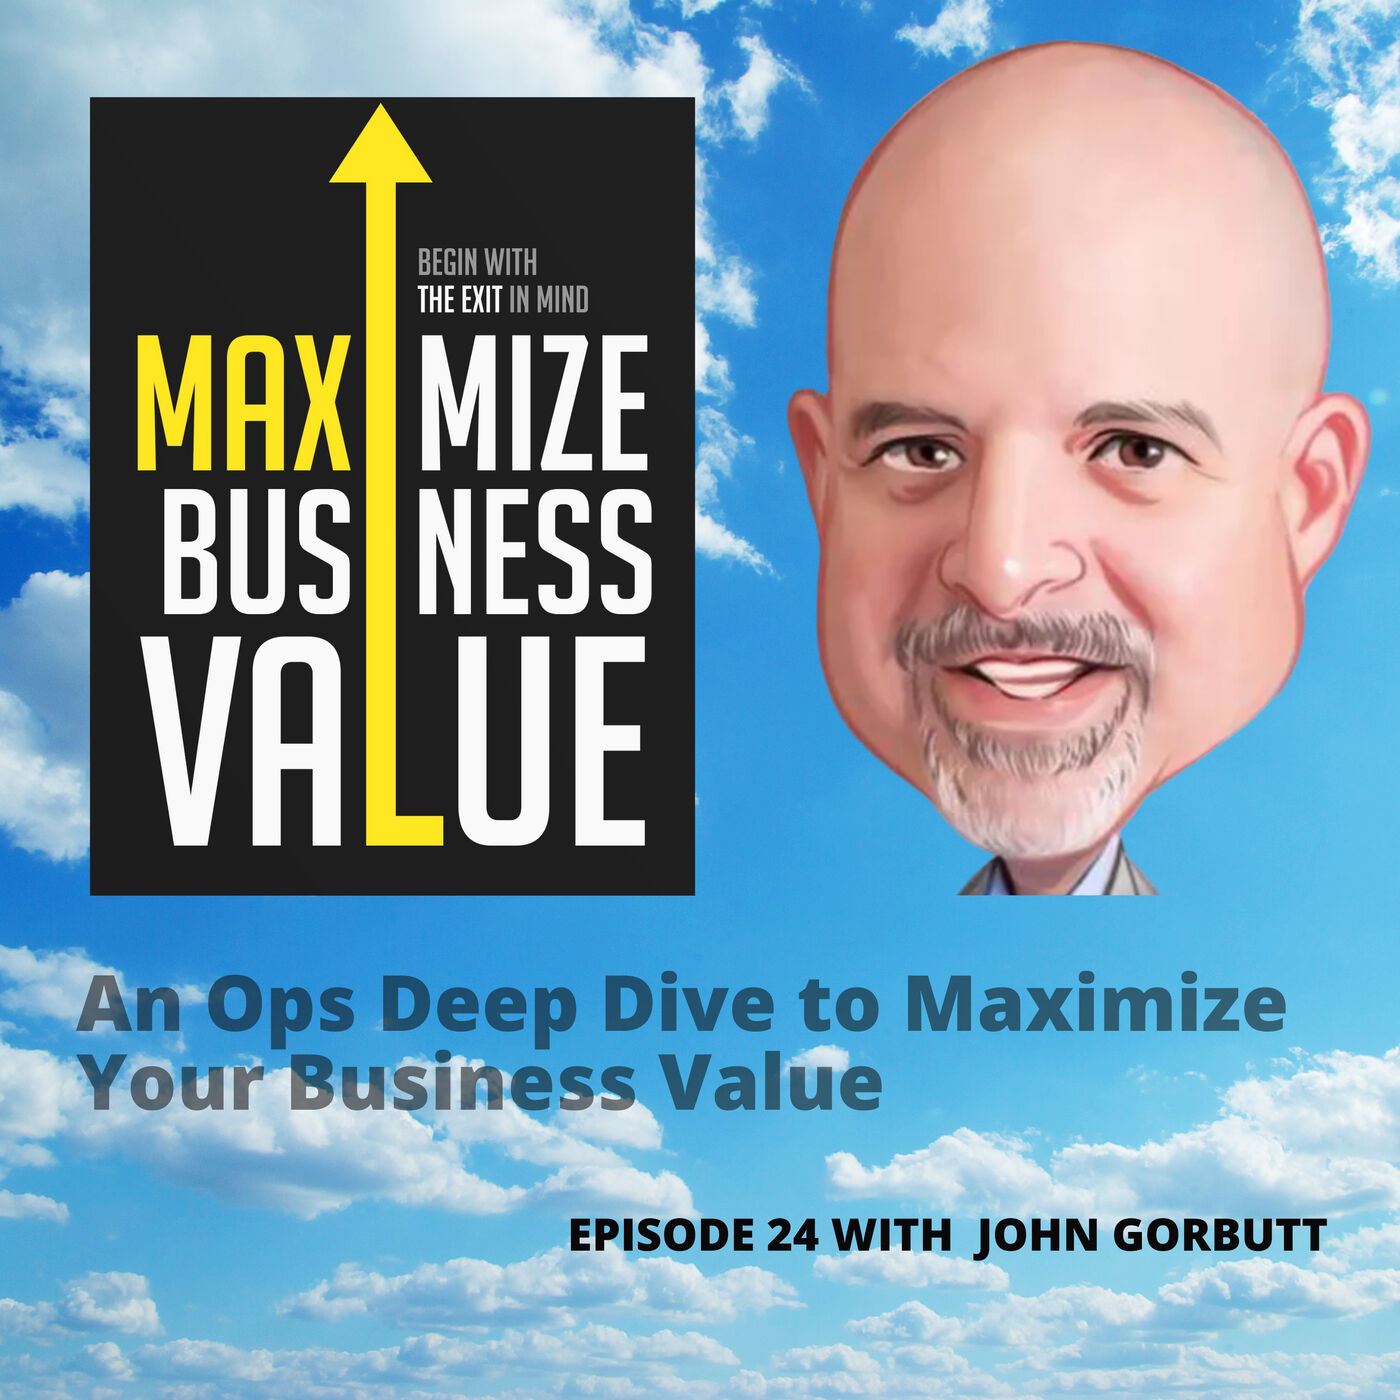 An Ops Deep Dive to Maximize Business Value